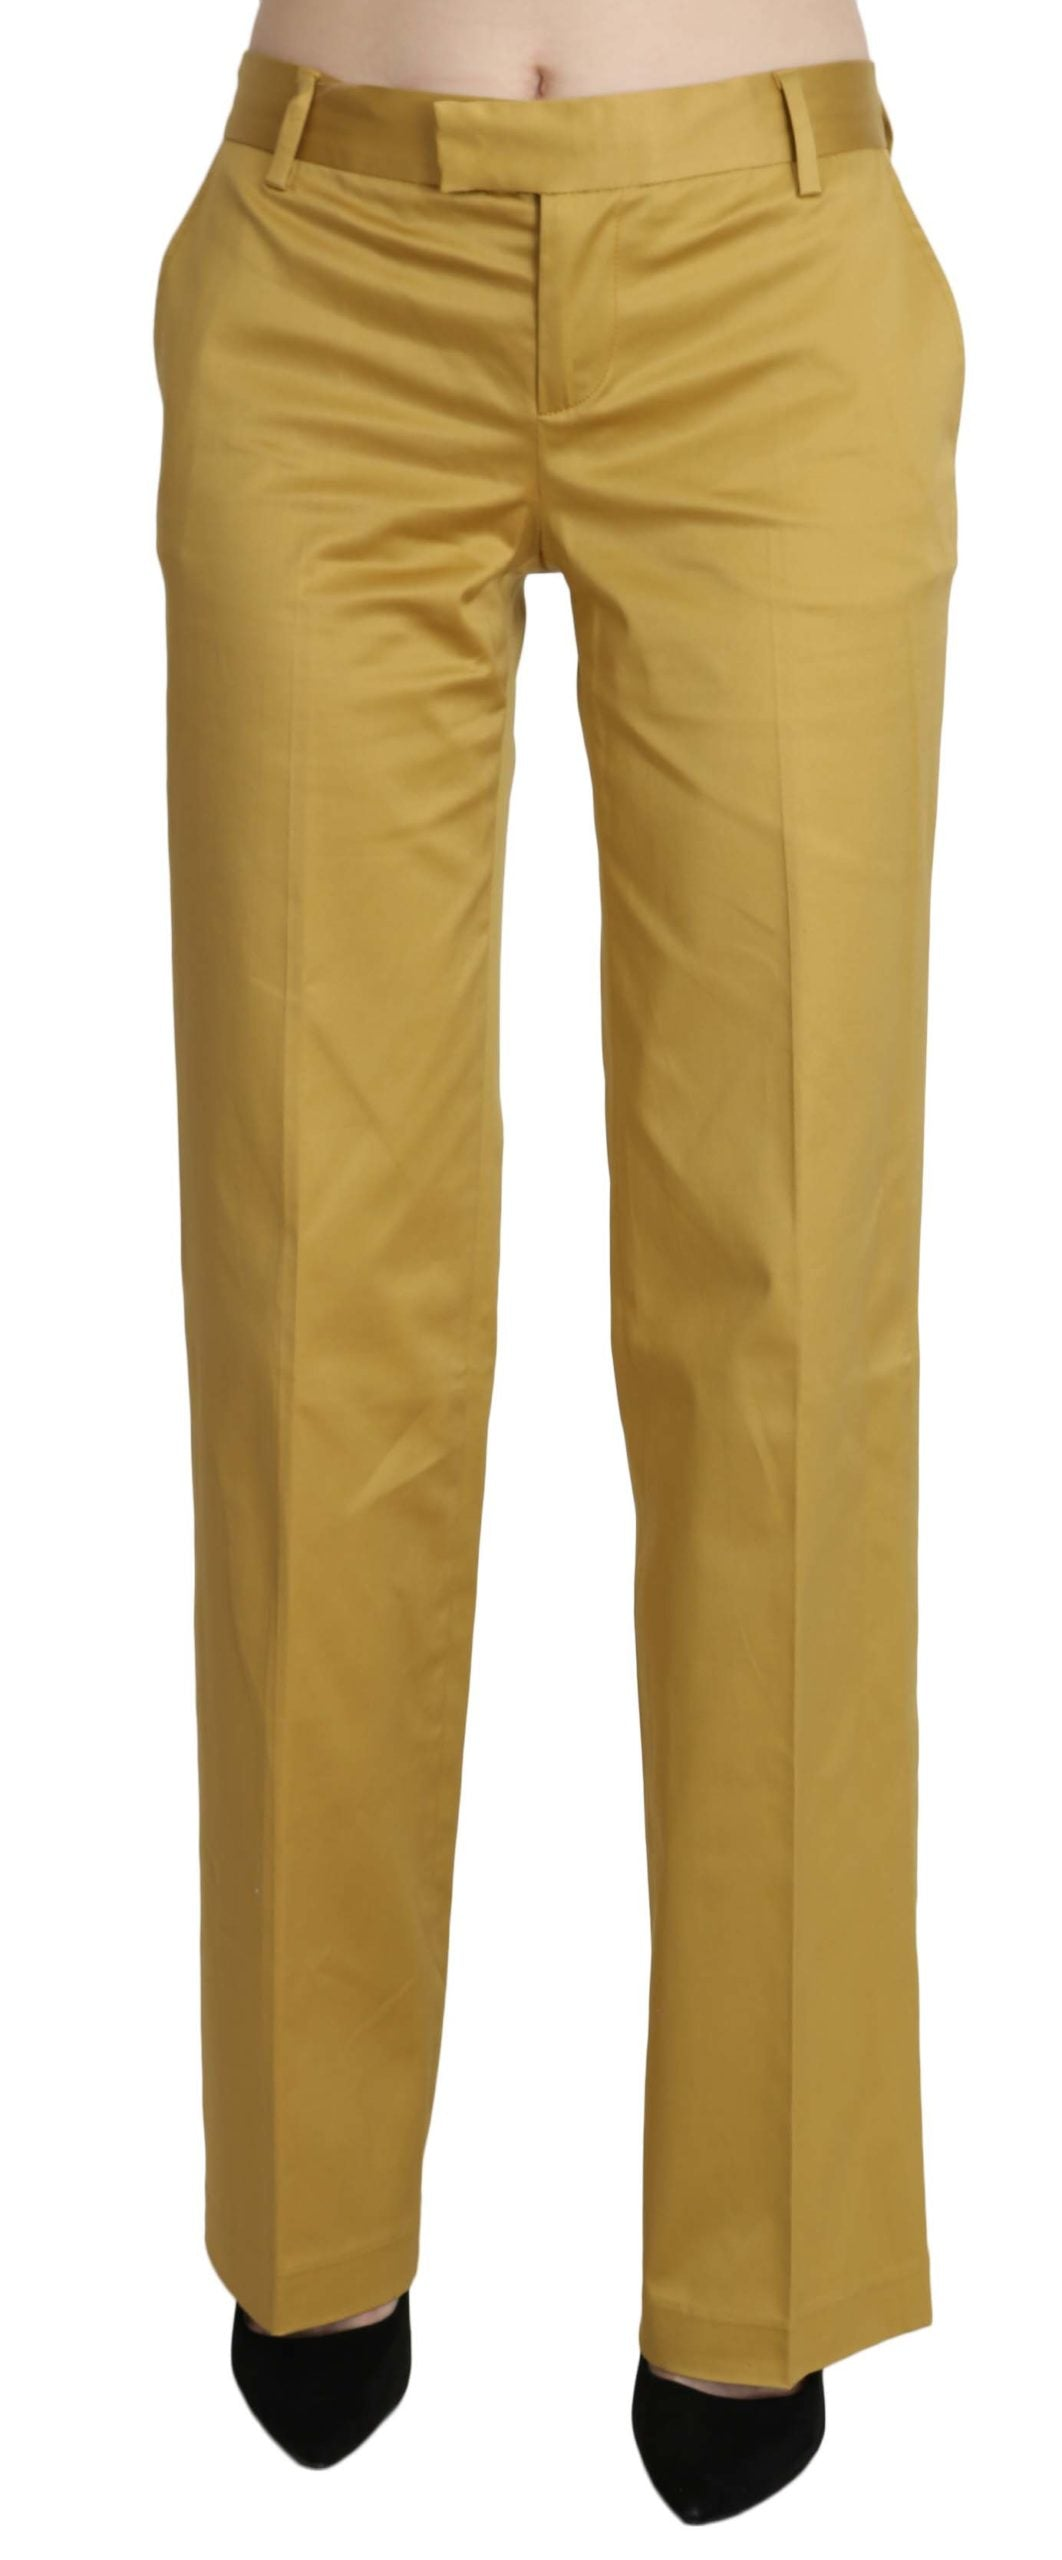 Just Cavalli Women's Trousers Yellow PAN70344